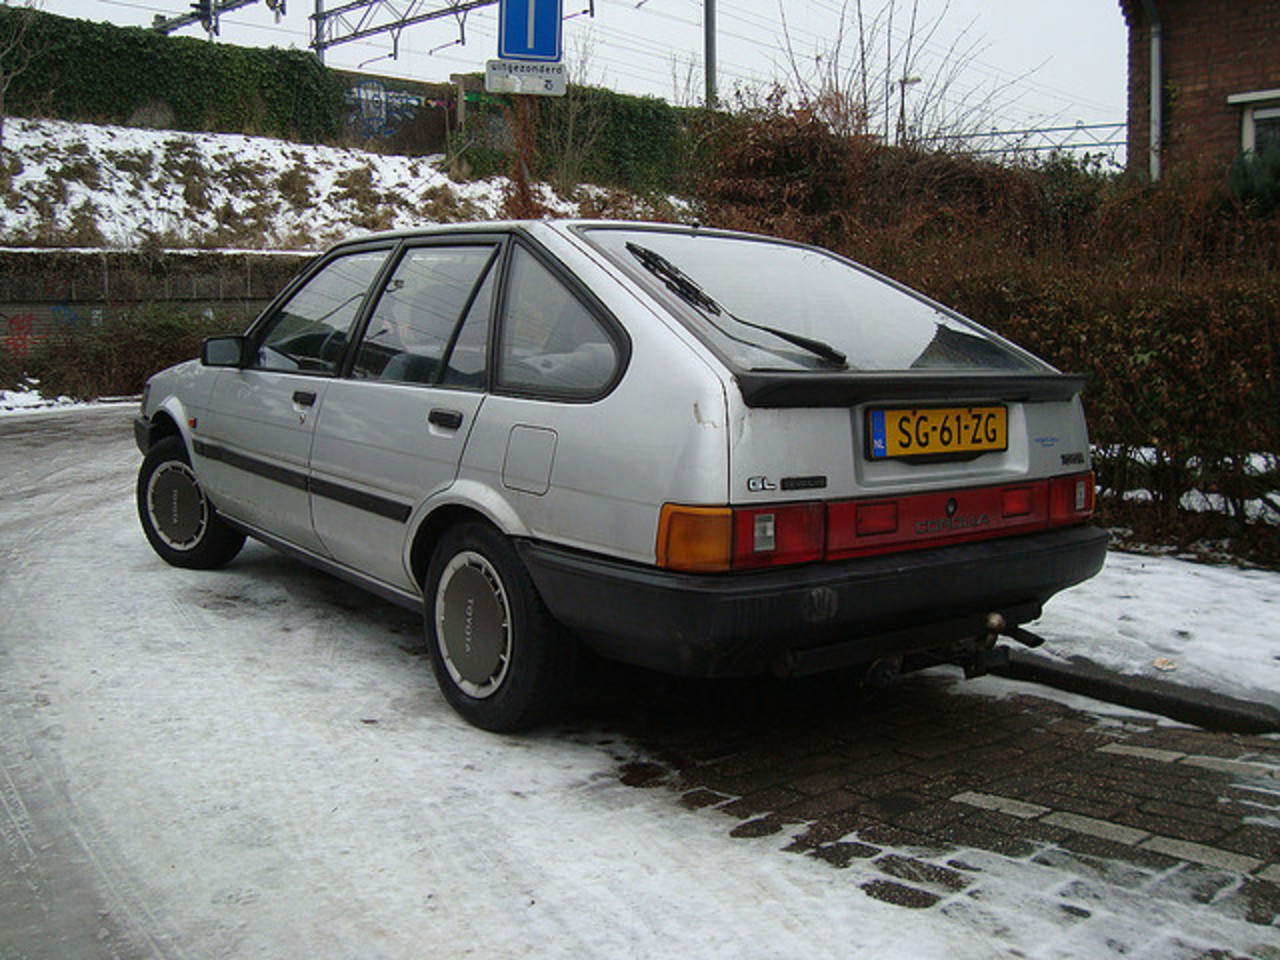 1987 Toyota Corolla Liftback GL 1.3 | Flickr - Photo Sharing!